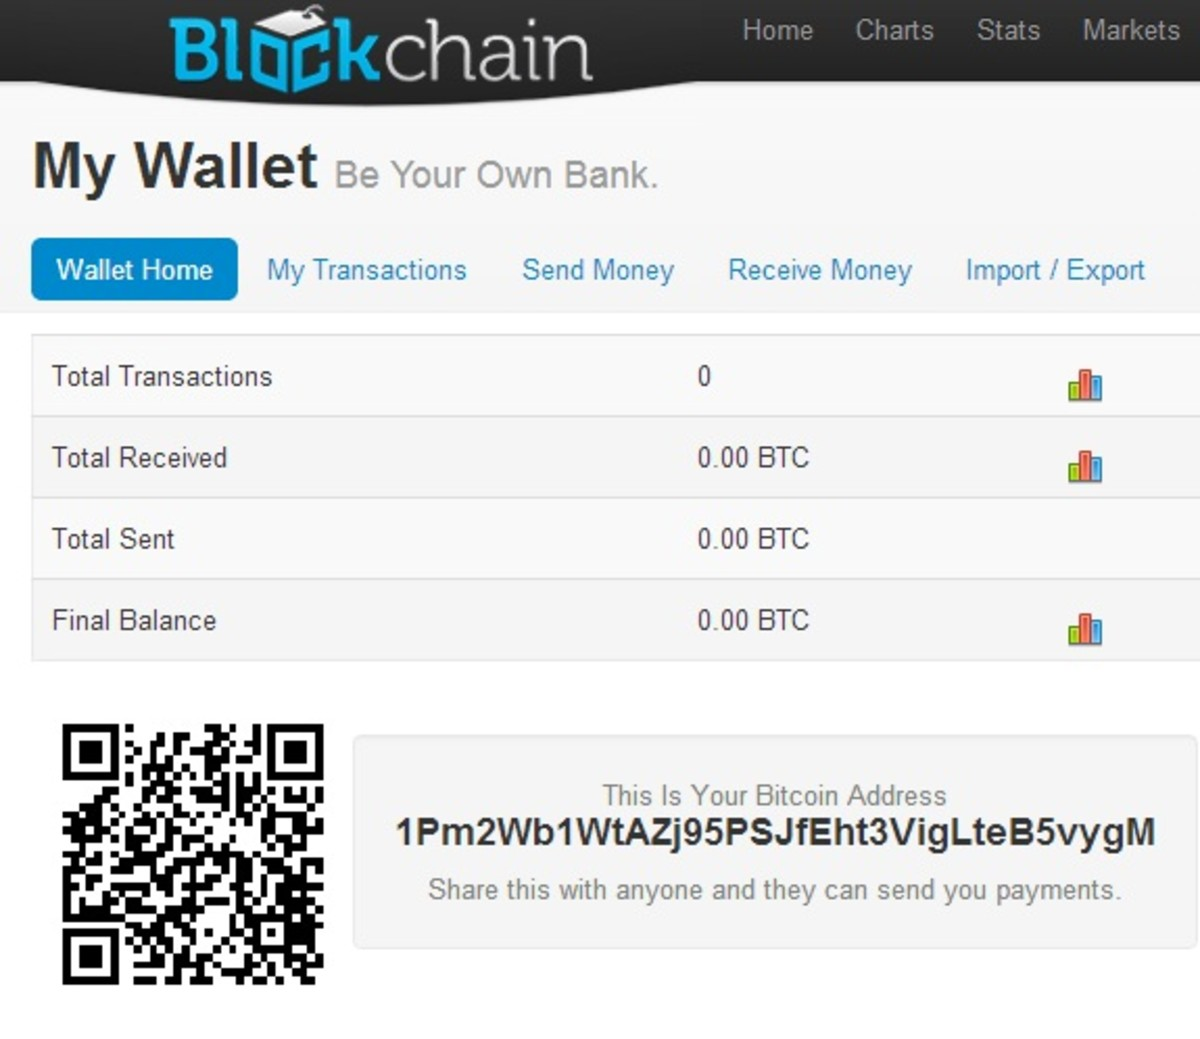 Once you have a wallet you can give out your address so people can send you Bitcoins!